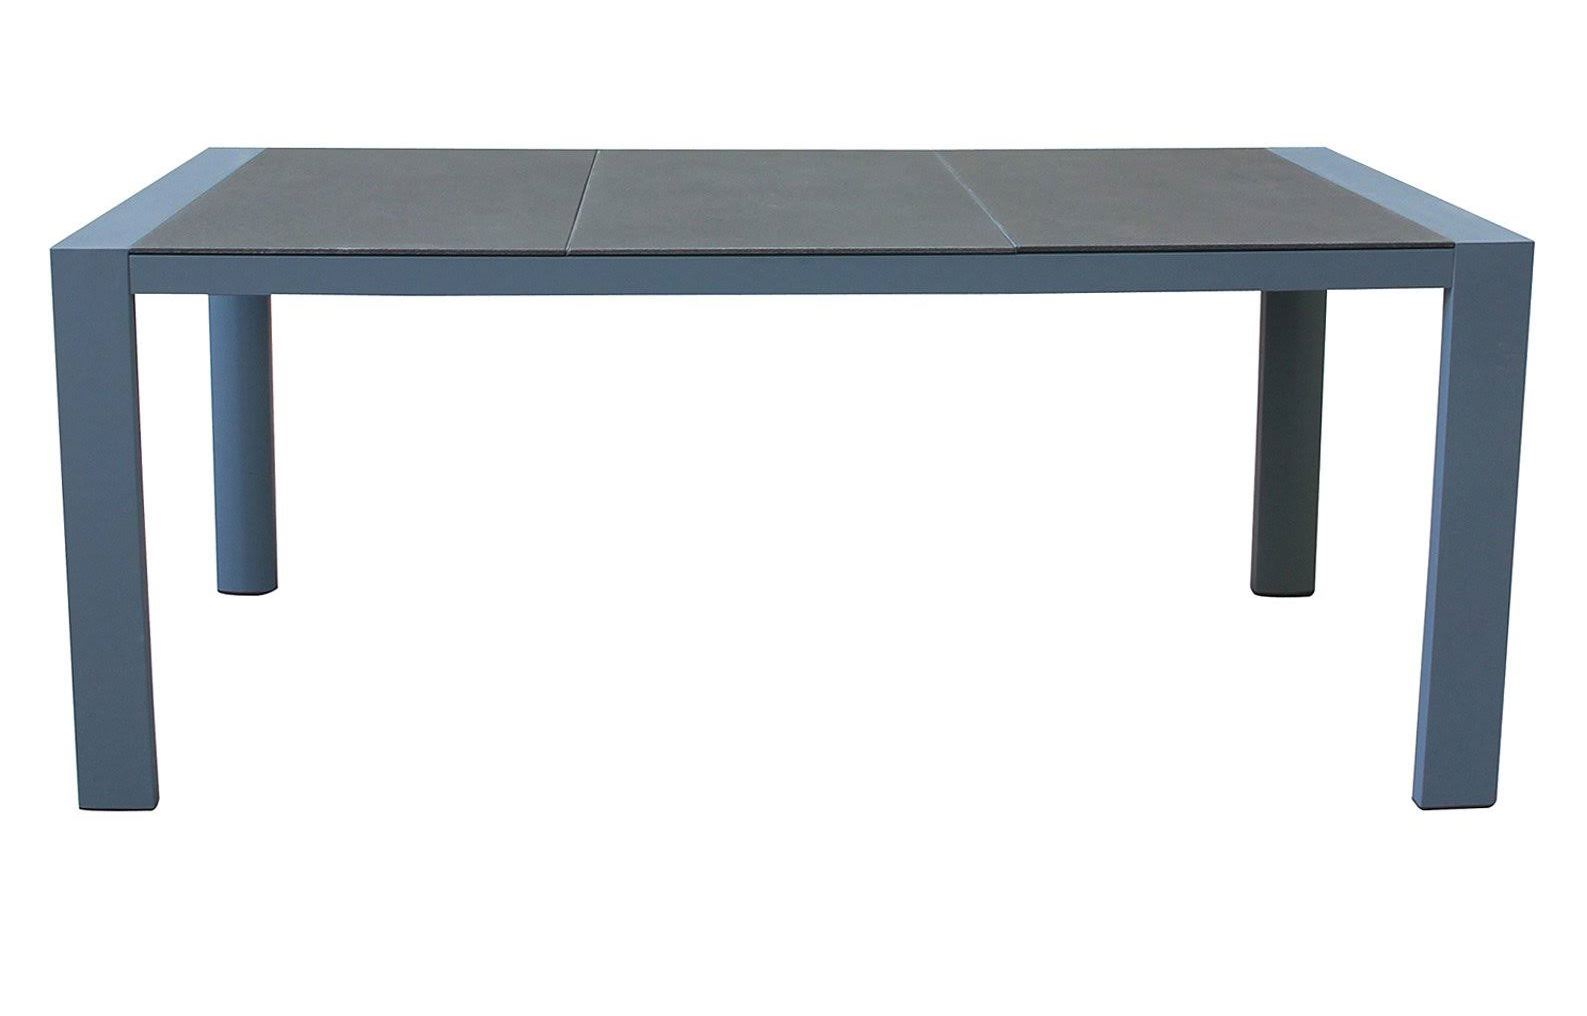 Armen Living Westport Outdoor Patio Dining Table Gray Powder Coated